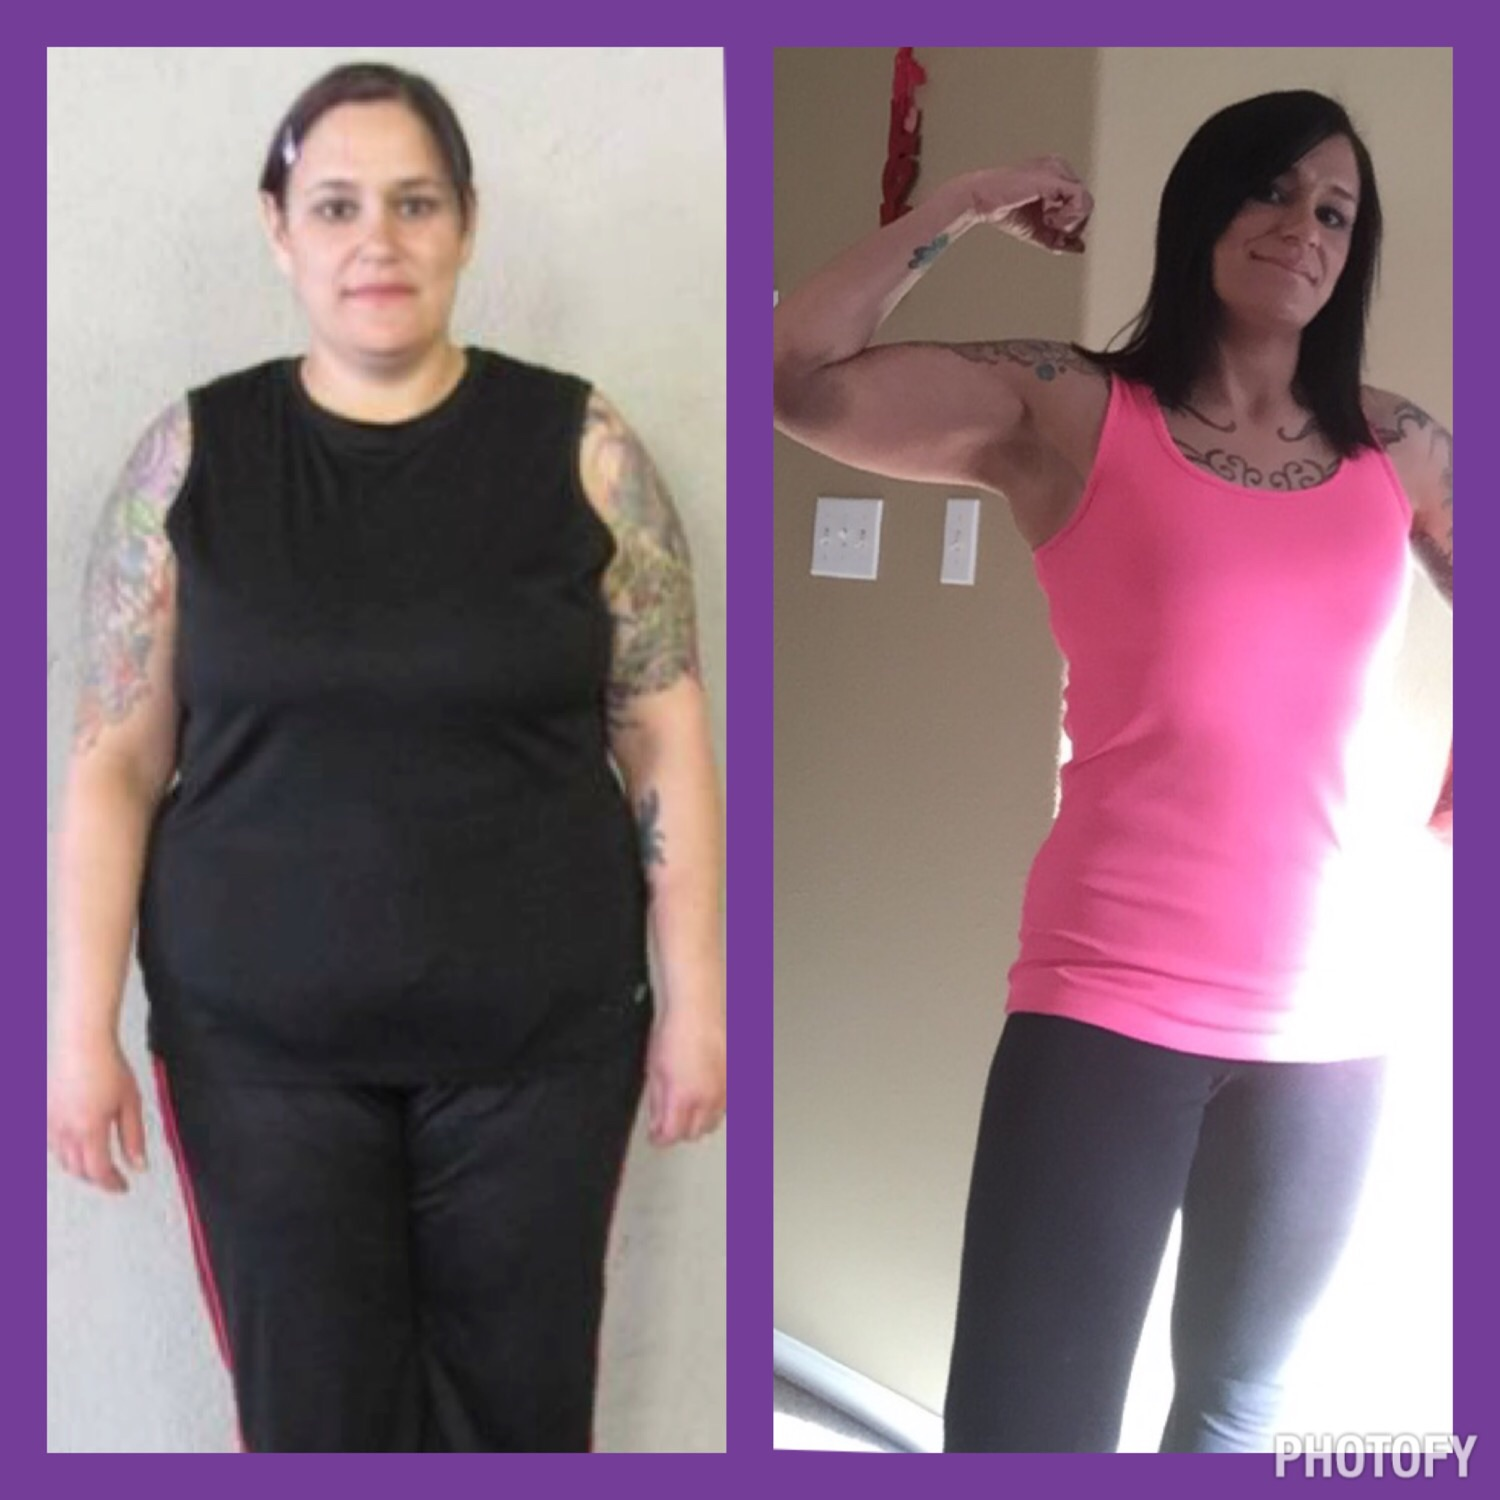 Weight Loss Before and After: Bernadette Fought Myself To Lose 84 Pounds